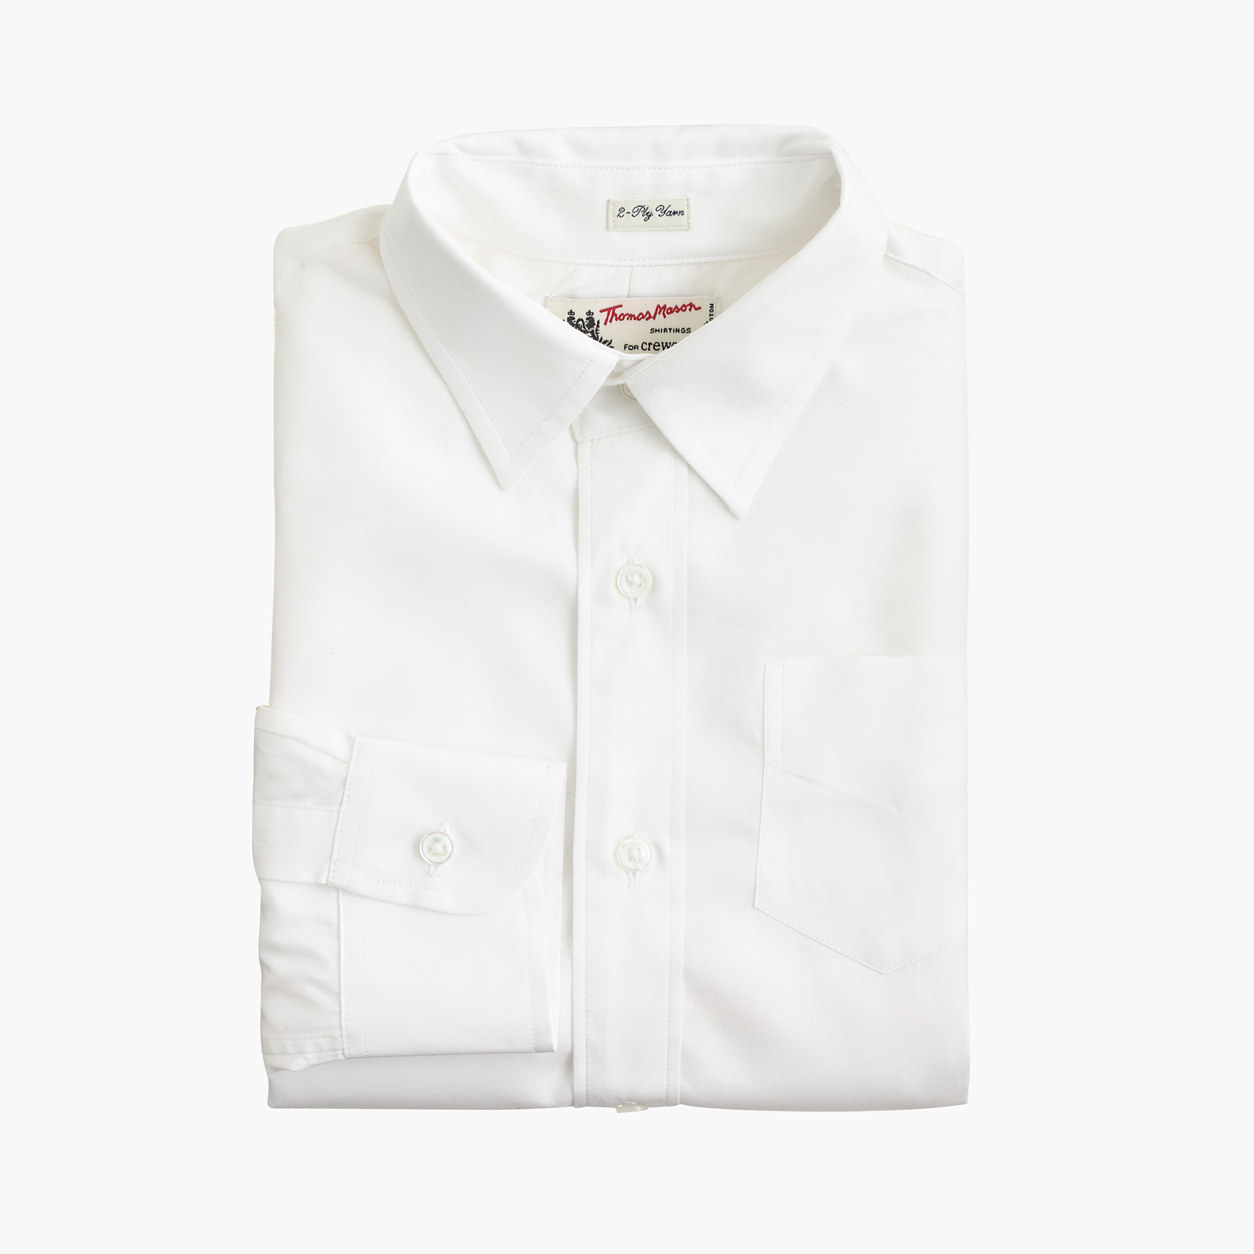 J cre white dress shirt for toddlers